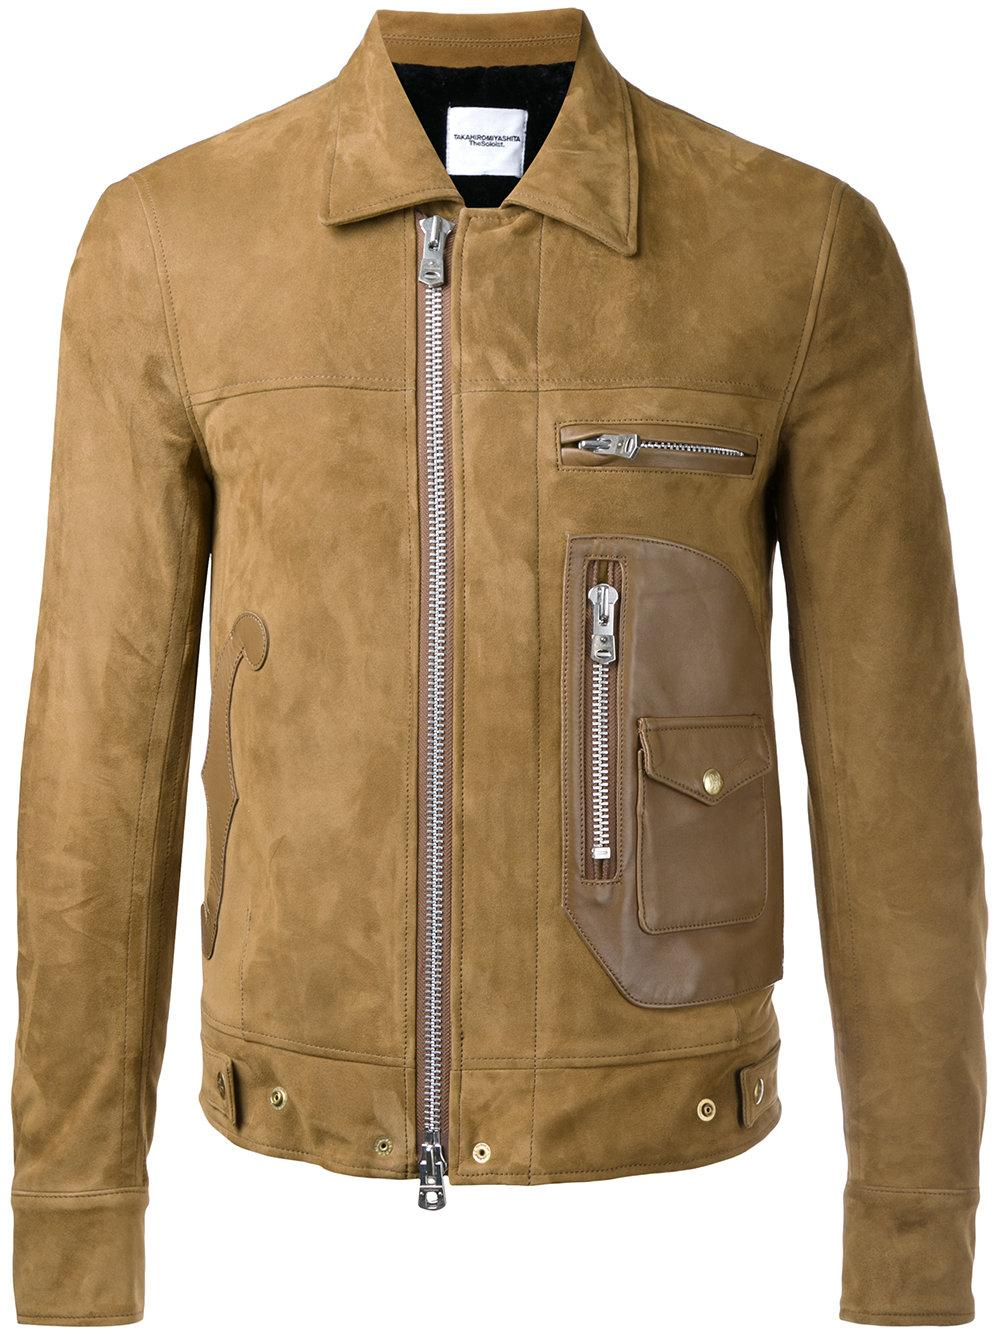 11976768-BROWN-5cffbc3c- Top Brands for Leather Jackets-15 Most Popular Brands 2018 for Men